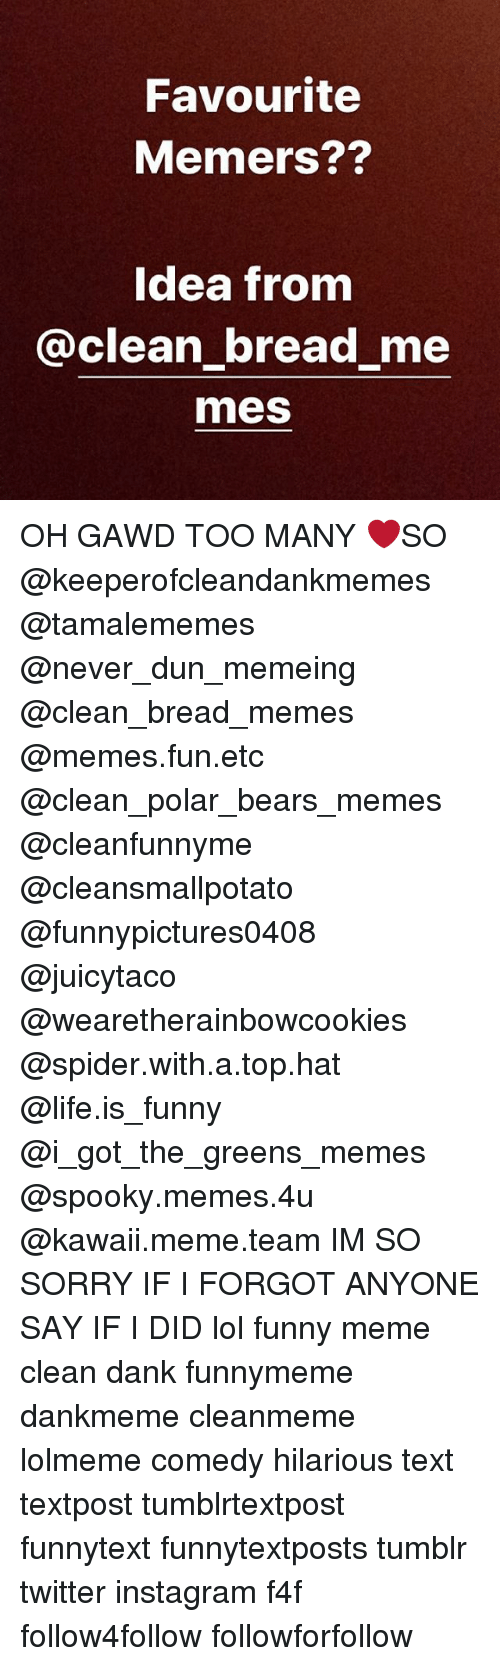 Bears Memes: Favourite  Memers??  Idea from  @clean bread me  mes OH GAWD TOO MANY ❤️SO @keeperofcleandankmemes @tamalememes @never_dun_memeing @clean_bread_memes @memes.fun.etc @clean_polar_bears_memes @cleanfunnyme @cleansmallpotato @funnypictures0408 @juicytaco @wearetherainbowcookies @spider.with.a.top.hat @life.is_funny @i_got_the_greens_memes @spooky.memes.4u @kawaii.meme.team IM SO SORRY IF I FORGOT ANYONE SAY IF I DID lol funny meme clean dank funnymeme dankmeme cleanmeme lolmeme comedy hilarious text textpost tumblrtextpost funnytext funnytextposts tumblr twitter instagram f4f follow4follow followforfollow